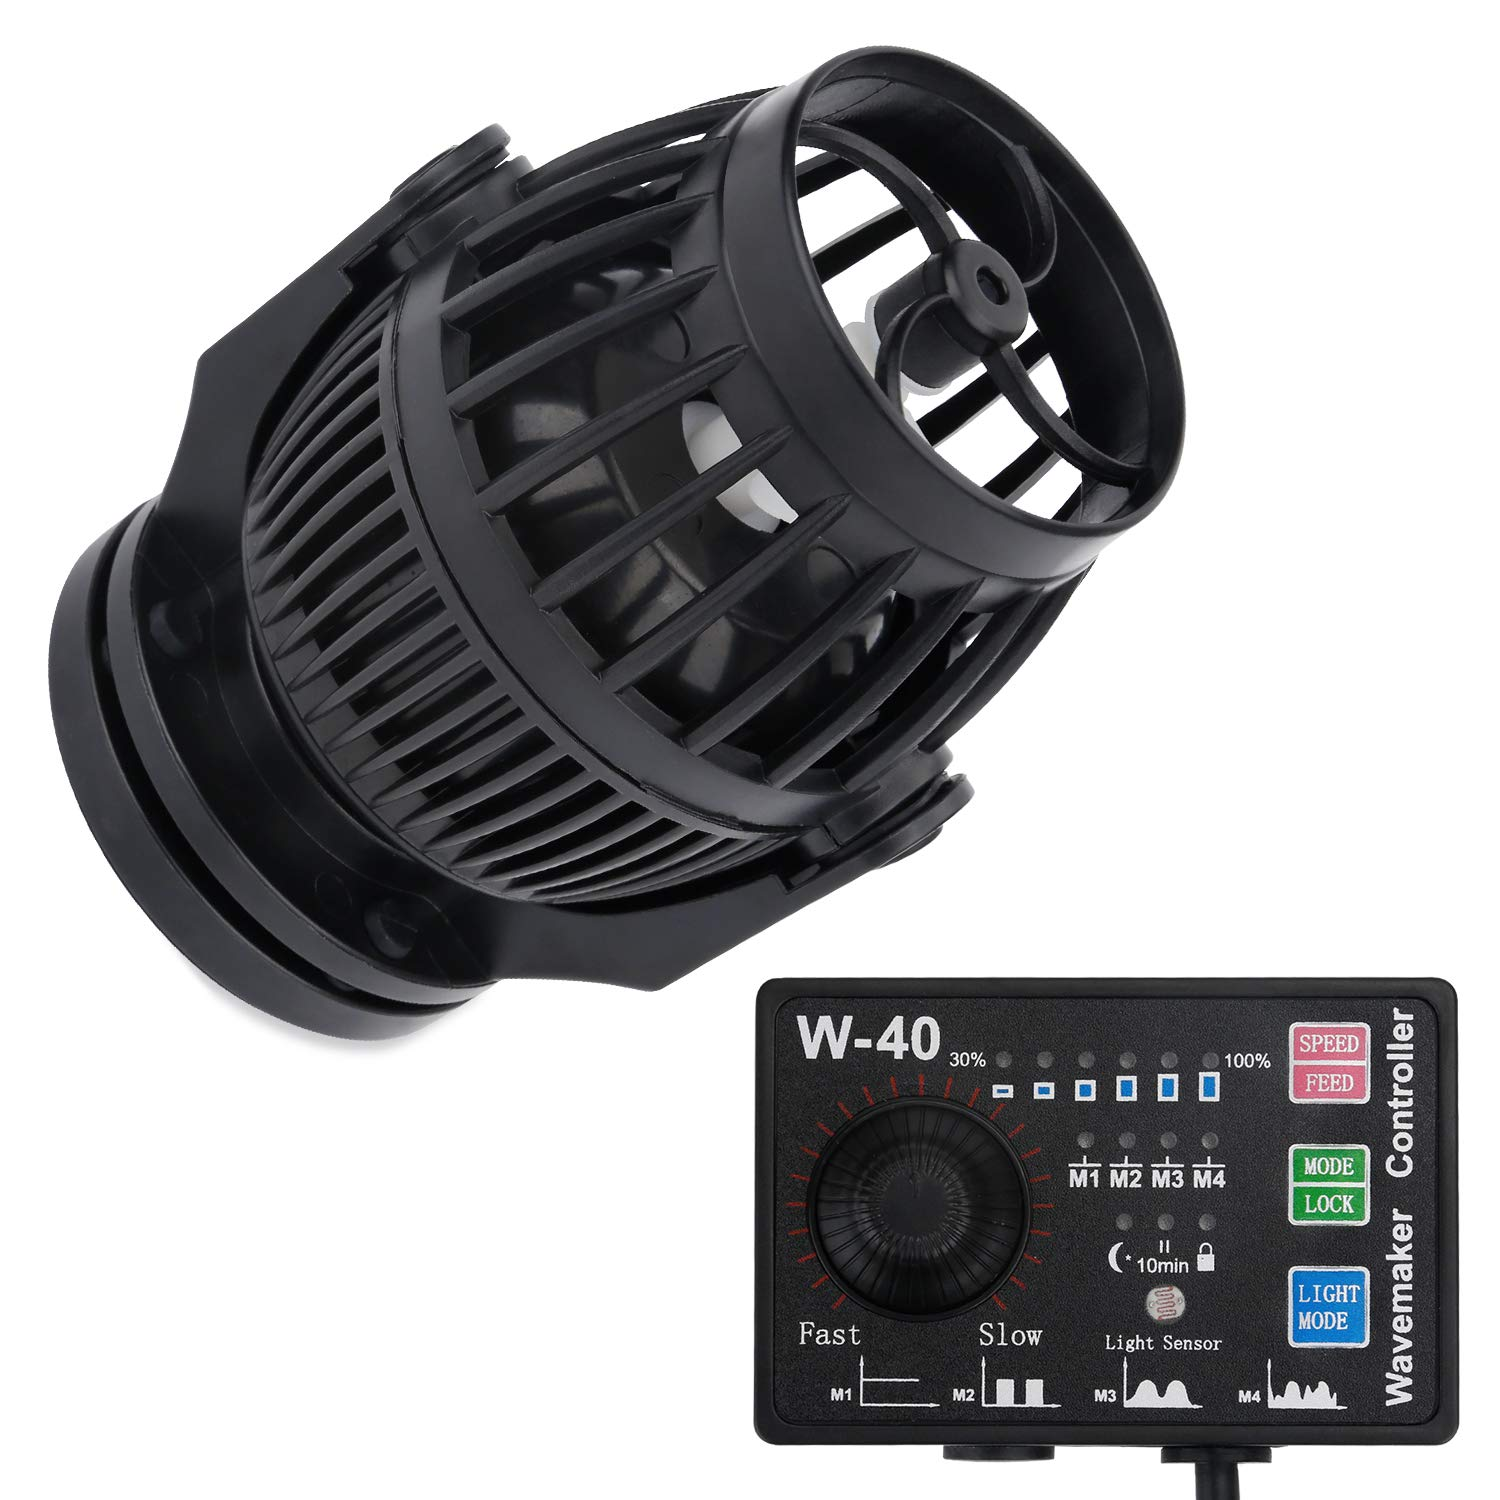 Uniclife 3400 GPH Controllable Wavemaker with W-40 Controller and Magnet Mount for Marine Freshwater Aquarium Circulation Pond by Uniclife